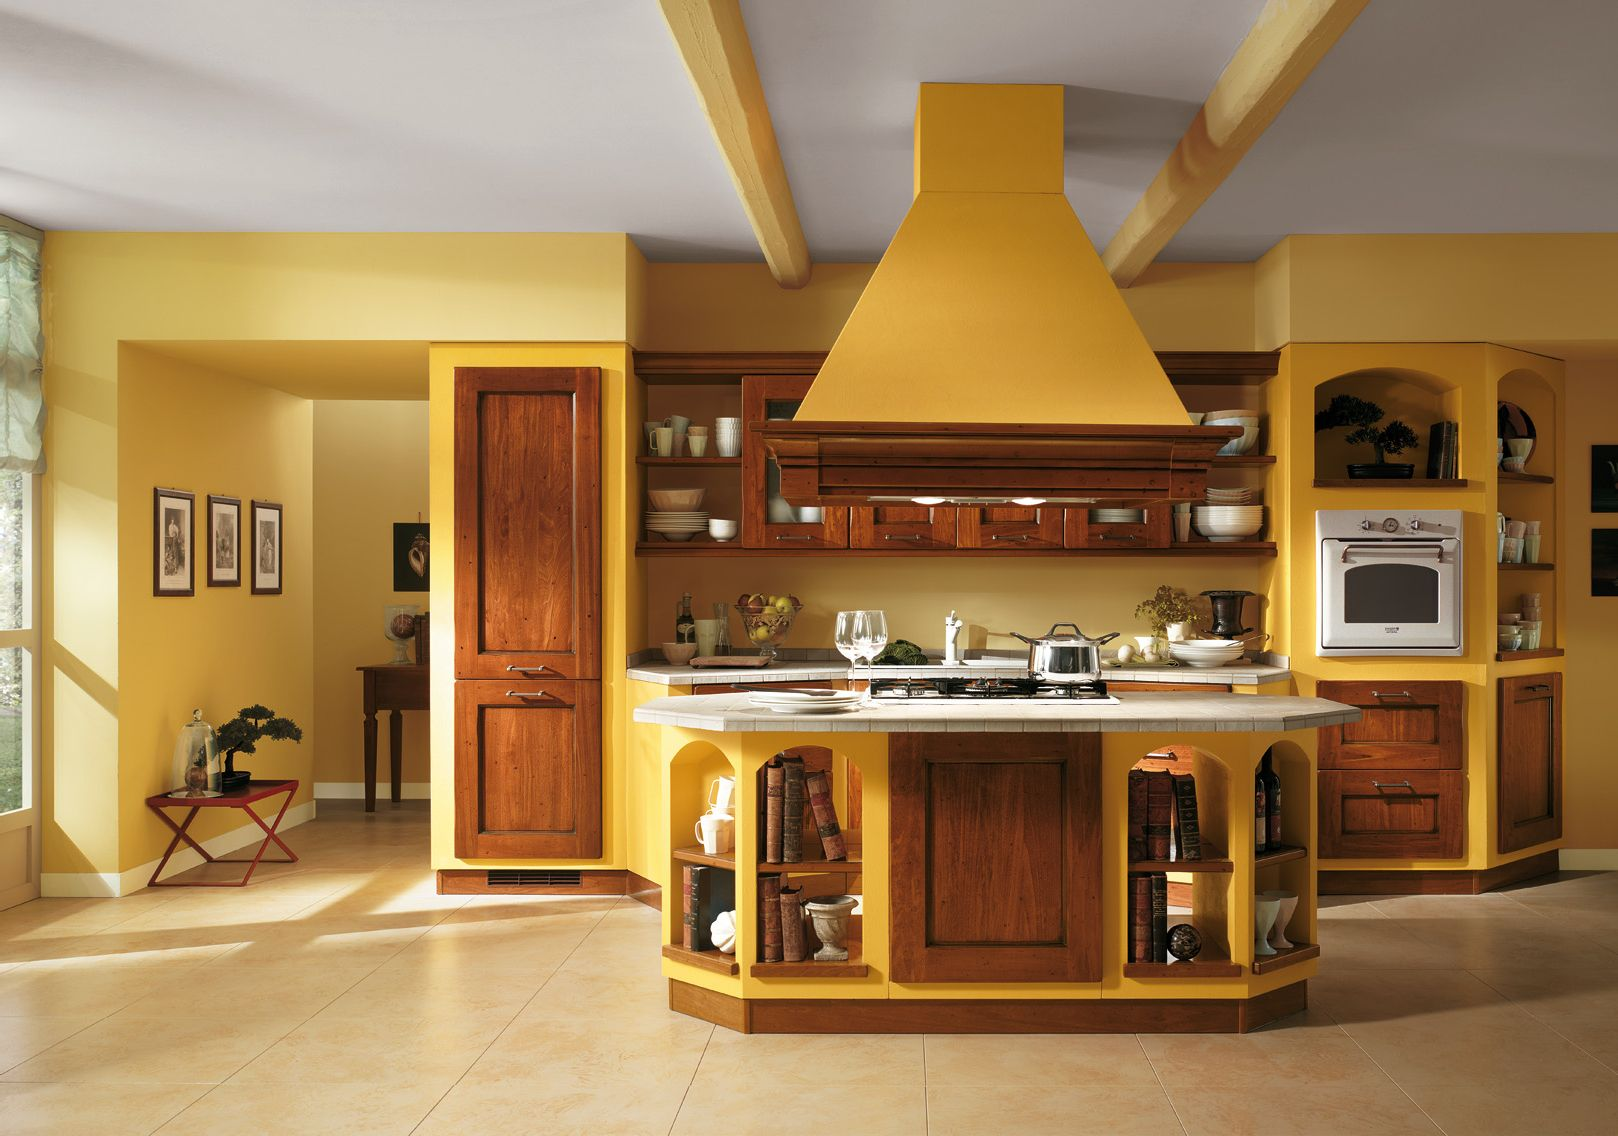 Italian kitchen color schemes for open interior design for New kitchen colors schemes